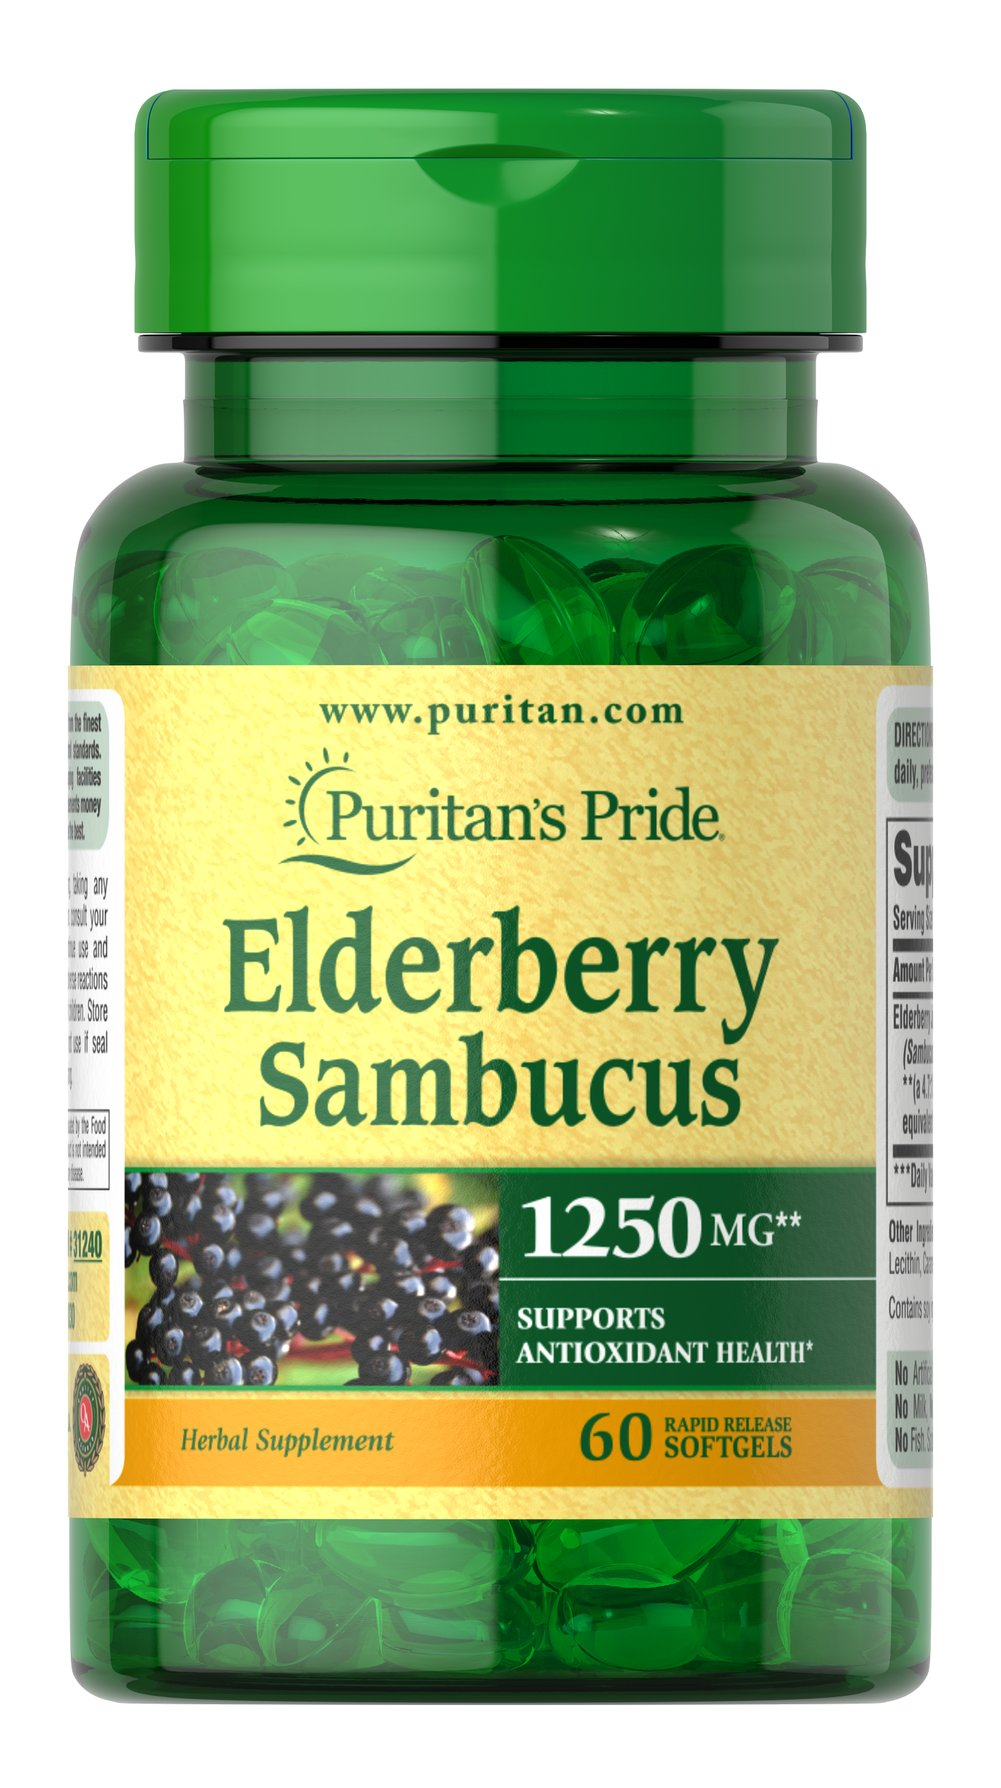 Elderberry Sambucus 1250 mg <p>SUPPORTS ANTIOXIDANT HEALTH**</p><p></p><p>Elderberry is a traditional herb for immune support**</p><p>Naturally contains beneficial flavonoids, including plant-based phytochemicals with antioxidant properties**</p><p>Elderberries have a long history of use as a food</p><p>This concentrated extract is provided in easy-to-swallow softgels</p><p>Rapid release softgels provide quick release&